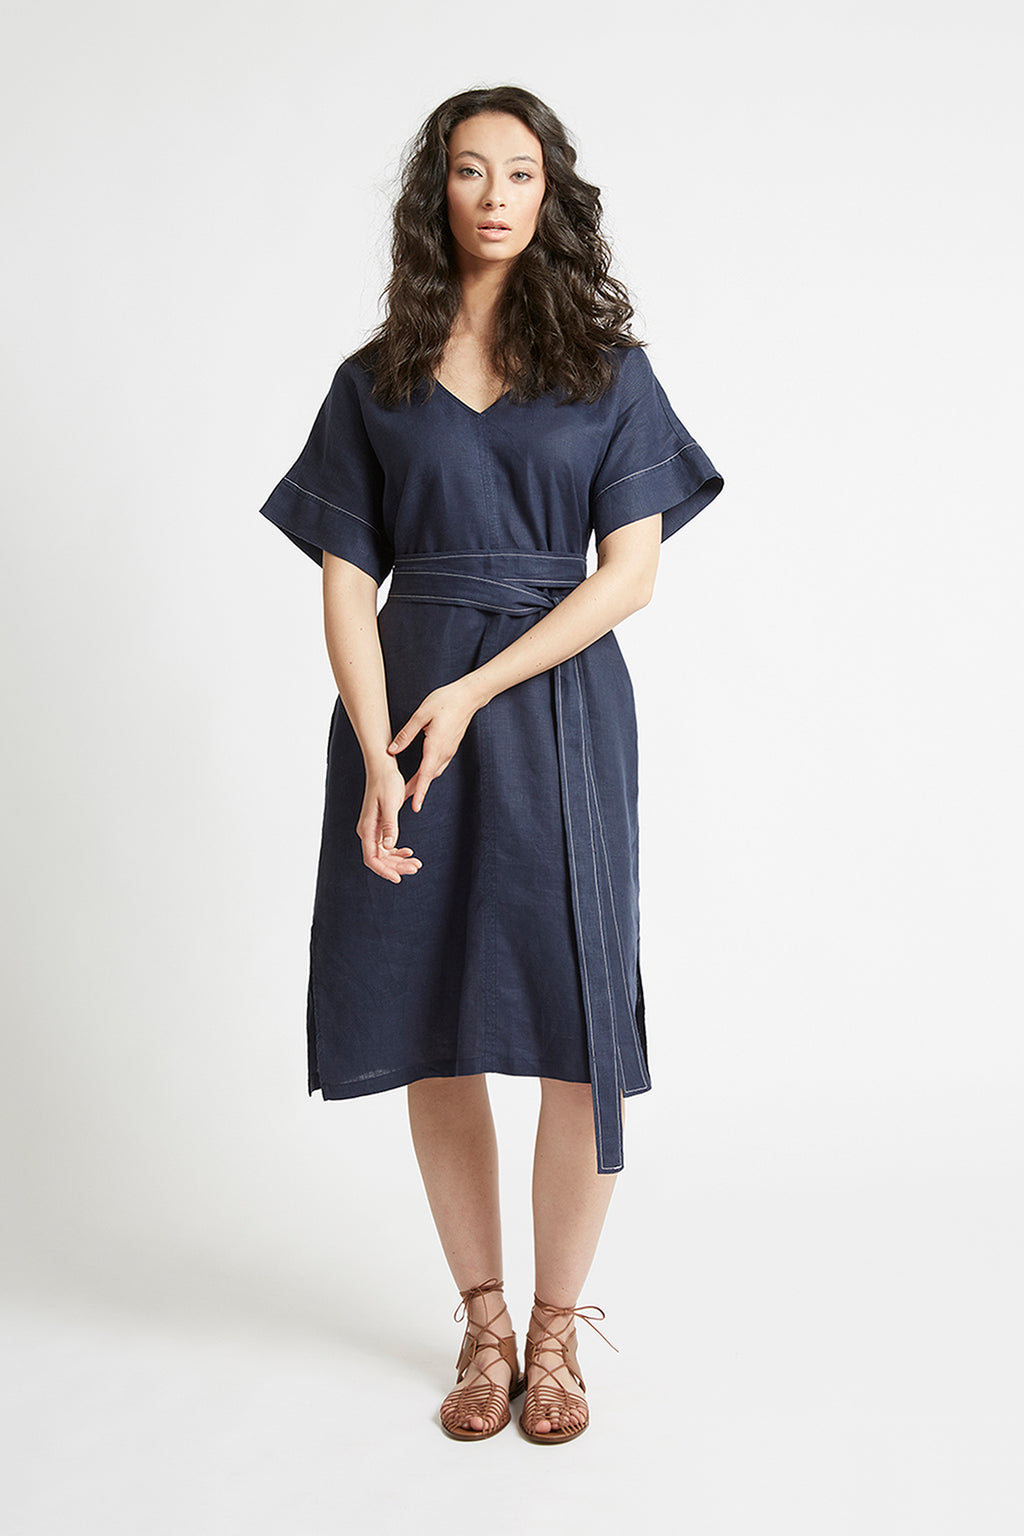 Navy Linen Kimono Sleeve Dress Dresses The Fashion Advocate ethical Australian fashion designer boutique Melbourne sustainable clothes